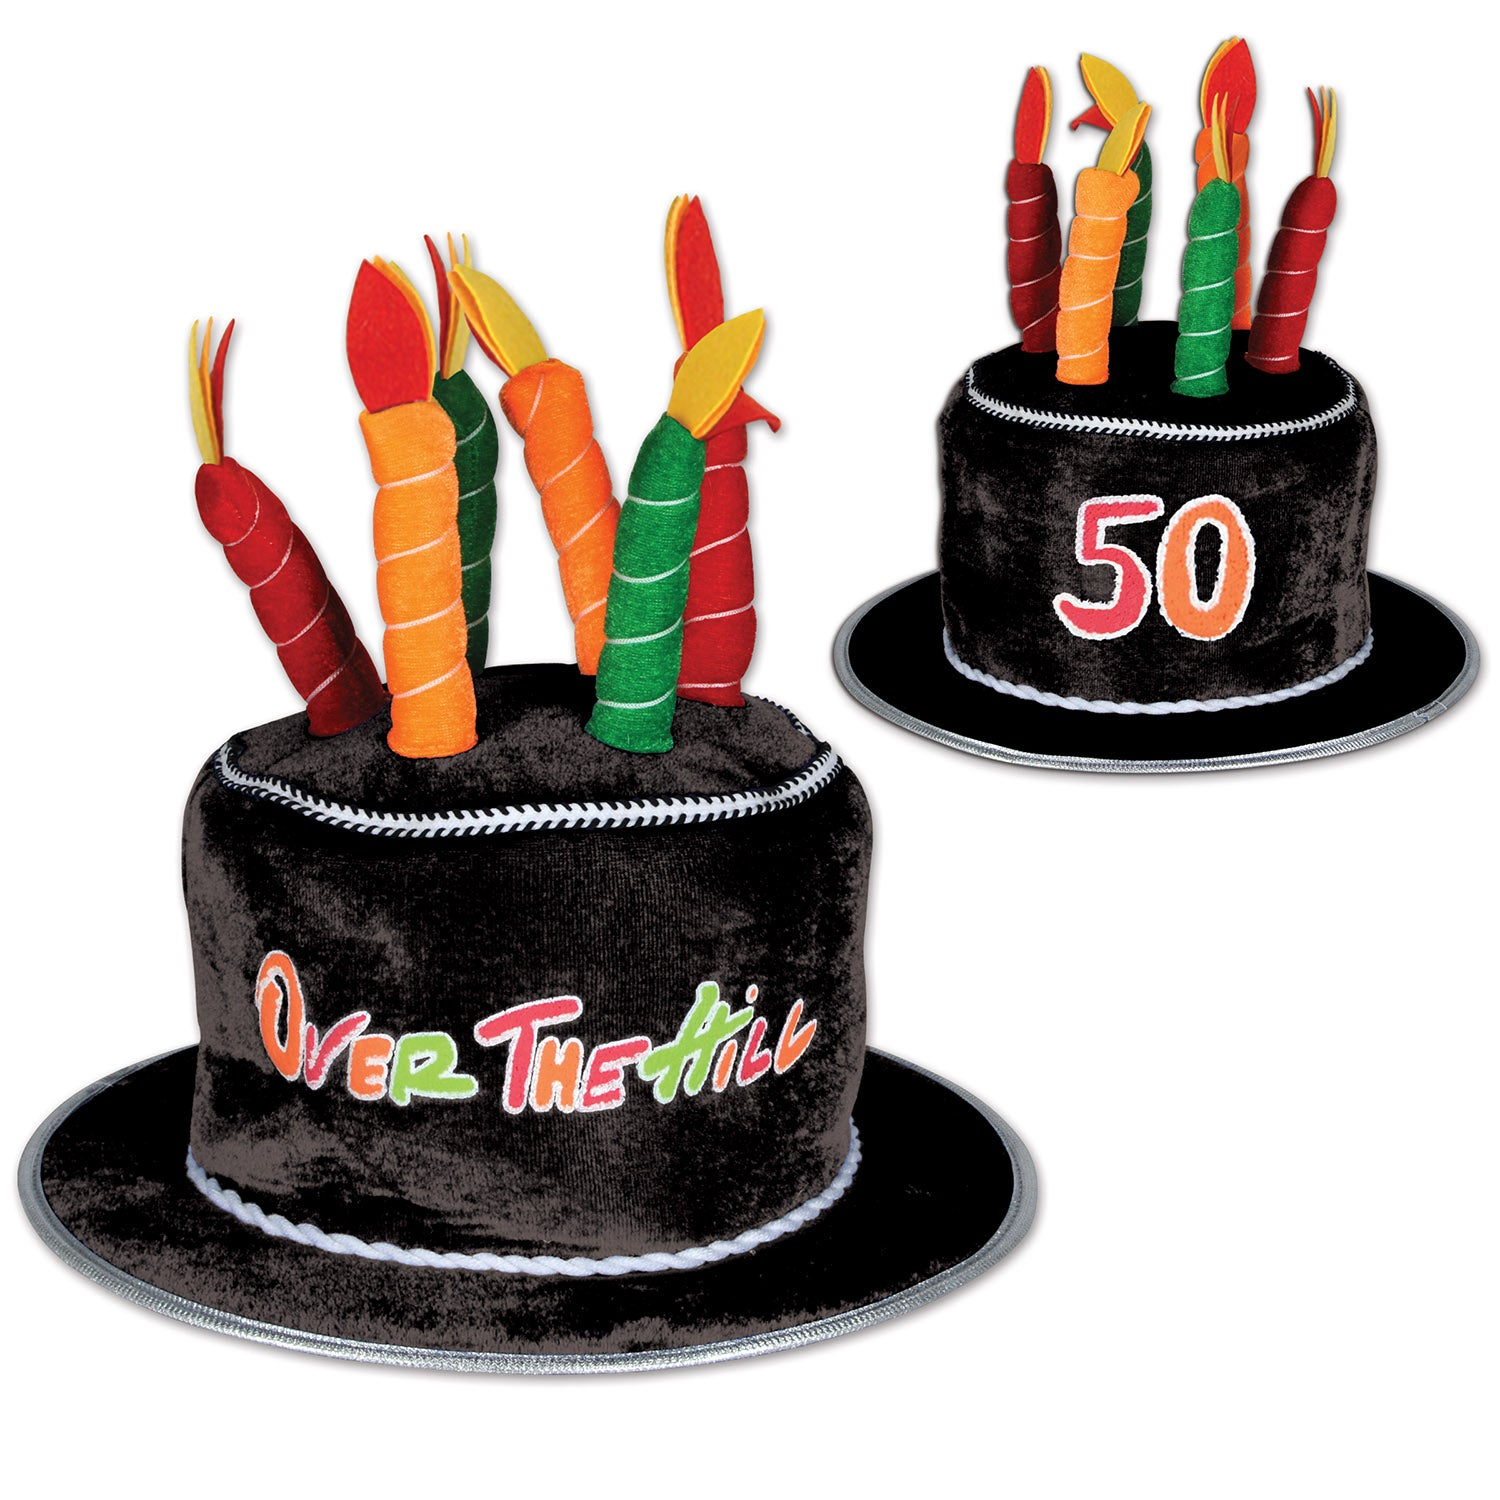 (Case Of 6) Beistle Plush 50 Over-The-Hill Birthday Cake